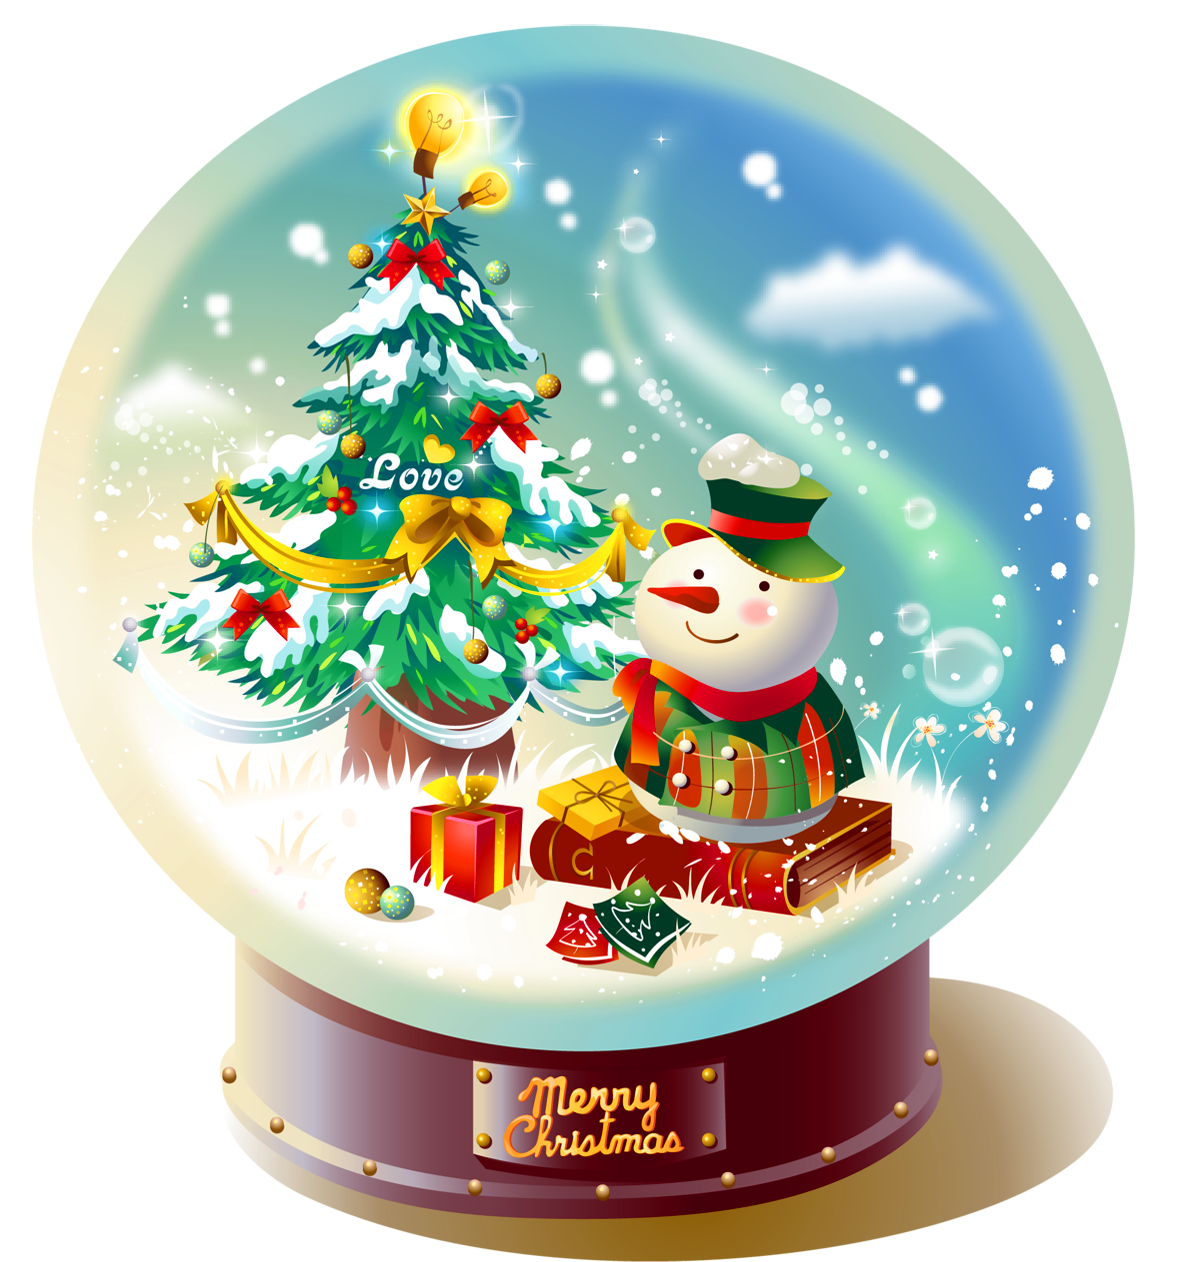 Christmas snow globe clipart banner freeuse download Transparent Christmas Snowglobe with Snowman PNG Picture | Gallery ... banner freeuse download